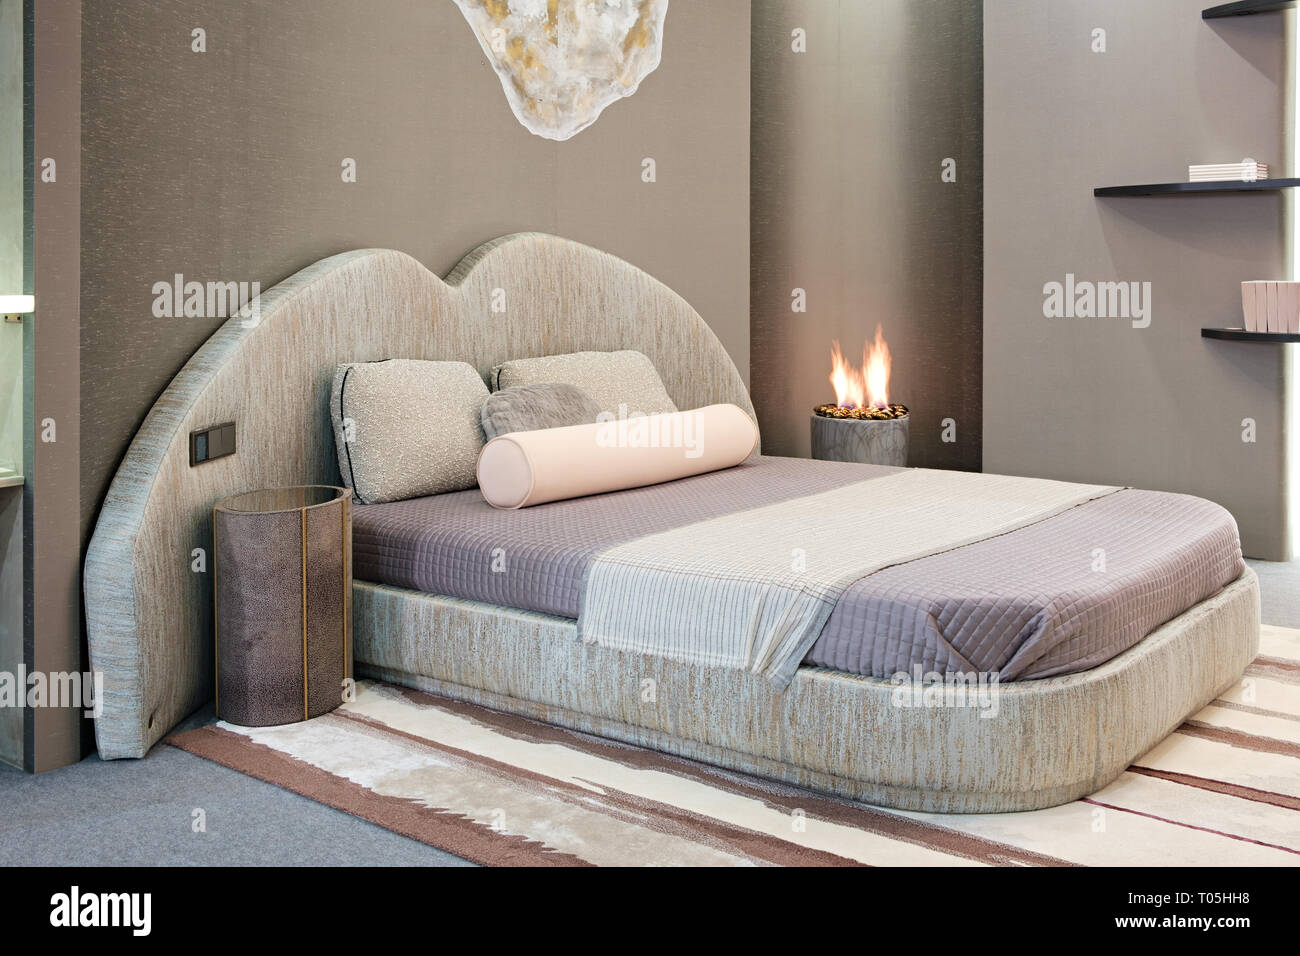 luxury modern style bedroom, Interior of a hotel bedroom or private ...